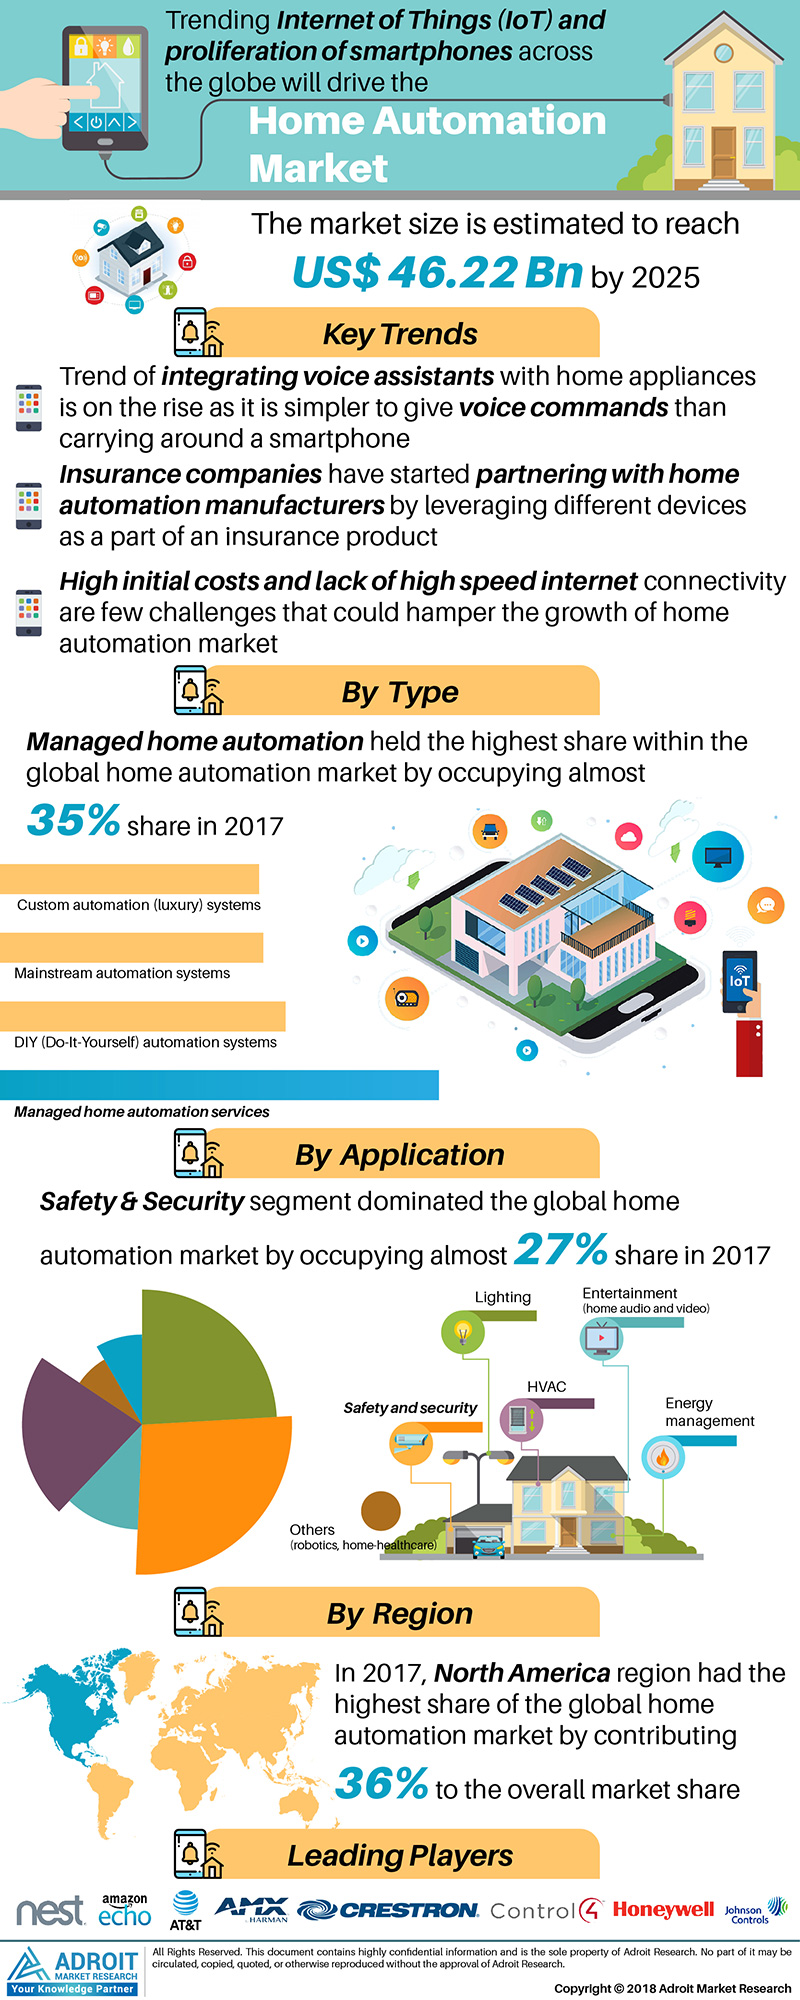 Global Home Automation Market Size 2017 By Type, Application, Technology, Region and Forecast 2018 to 2025